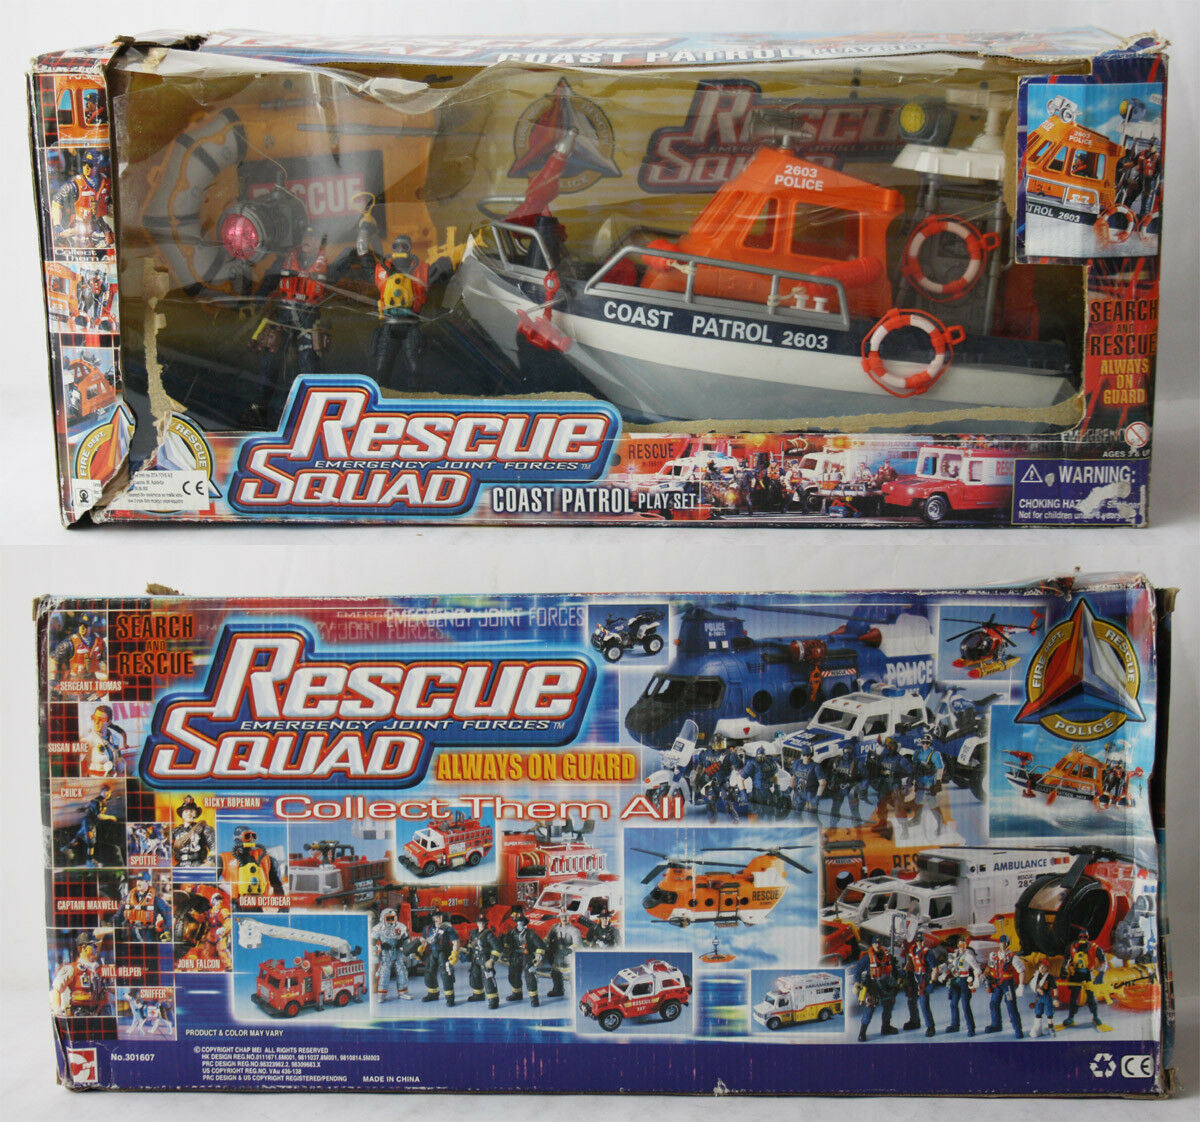 VERY RARE CHAP MEI RESCUE SQUAD COAST PATROL PLAYSET NAVY SEALS G I JOE NEW MIB